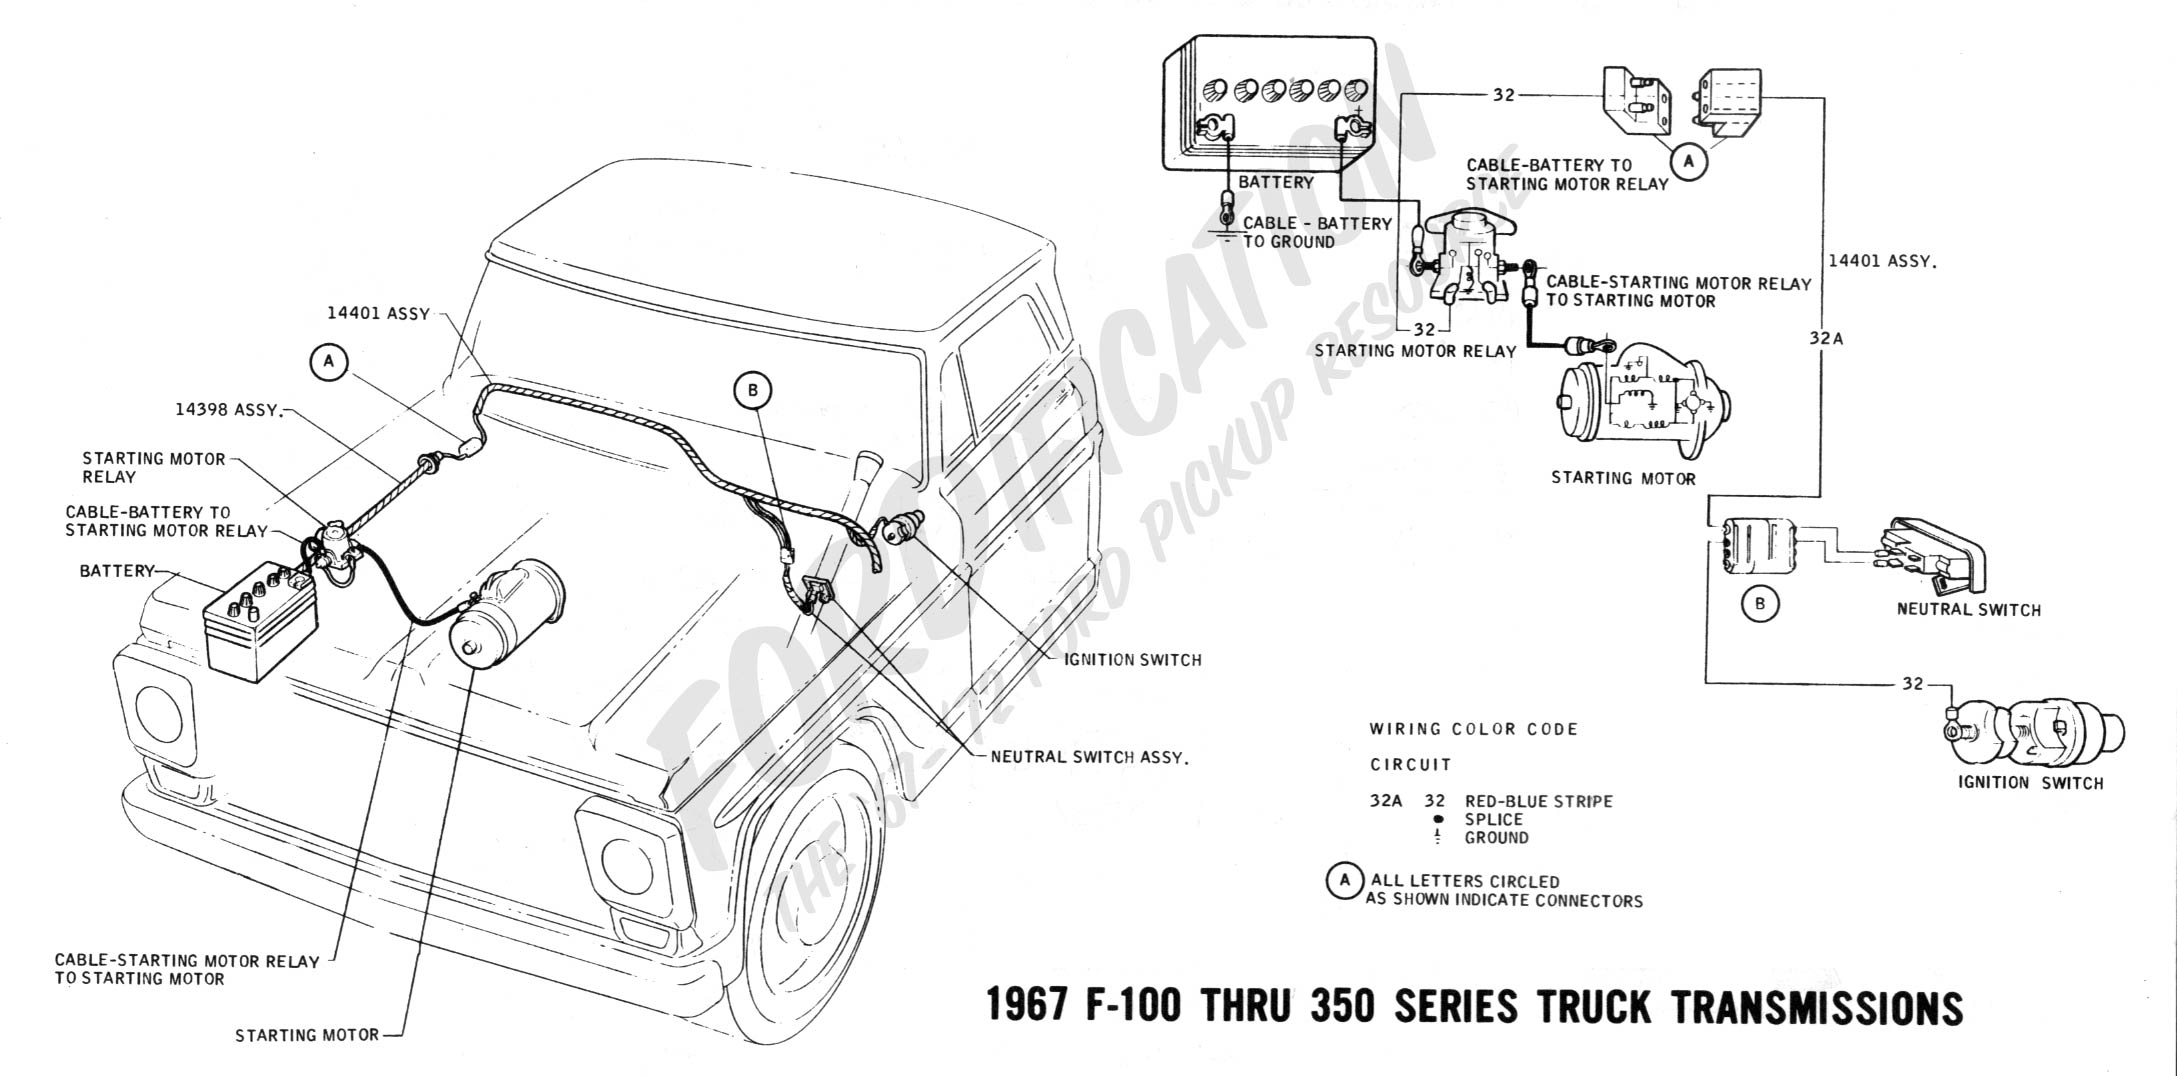 wiring 1967trucktranny 73 79 ford truck wiring diagram wiring diagram and schematic design Wiring Diagram for 1965 Chevy Truck at honlapkeszites.co